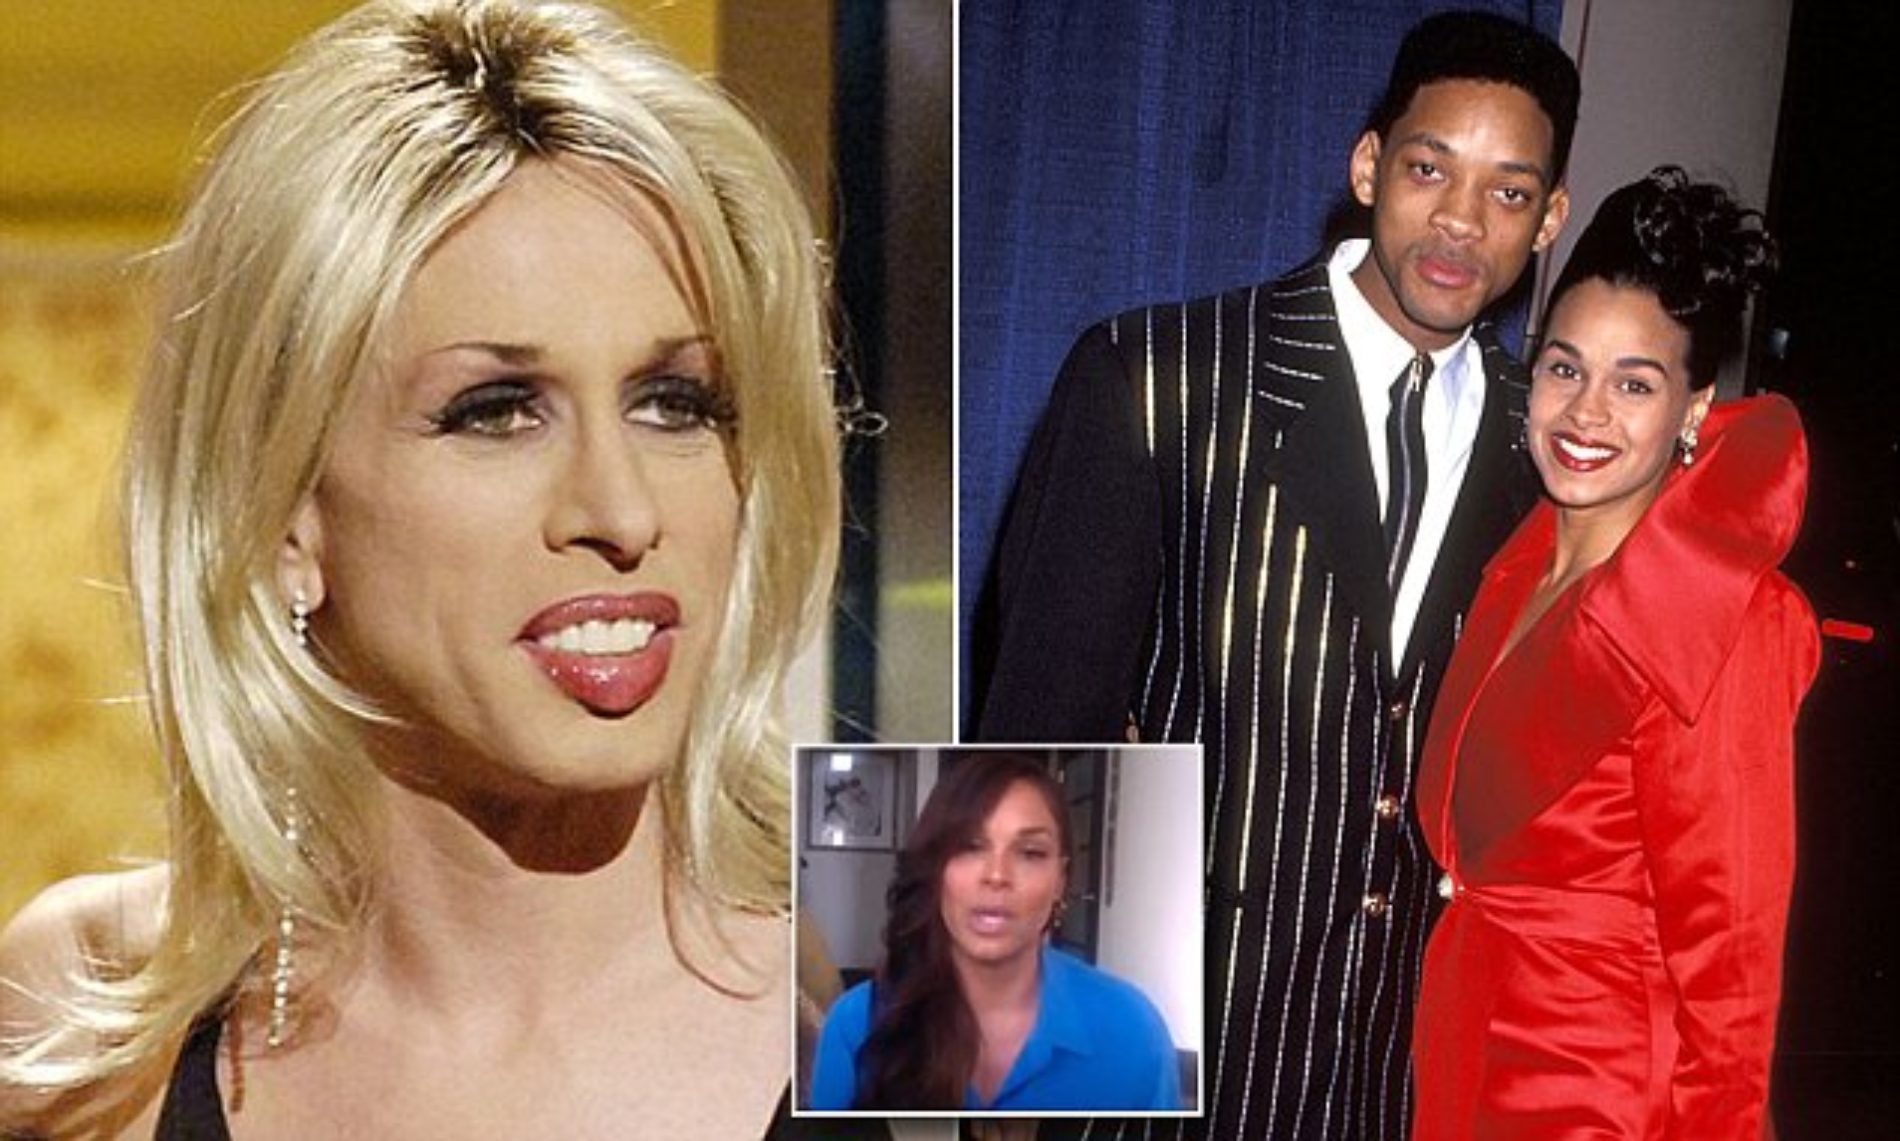 Will Smith's first wife denies claims she walked in on him 'servicing his sugar daddy'